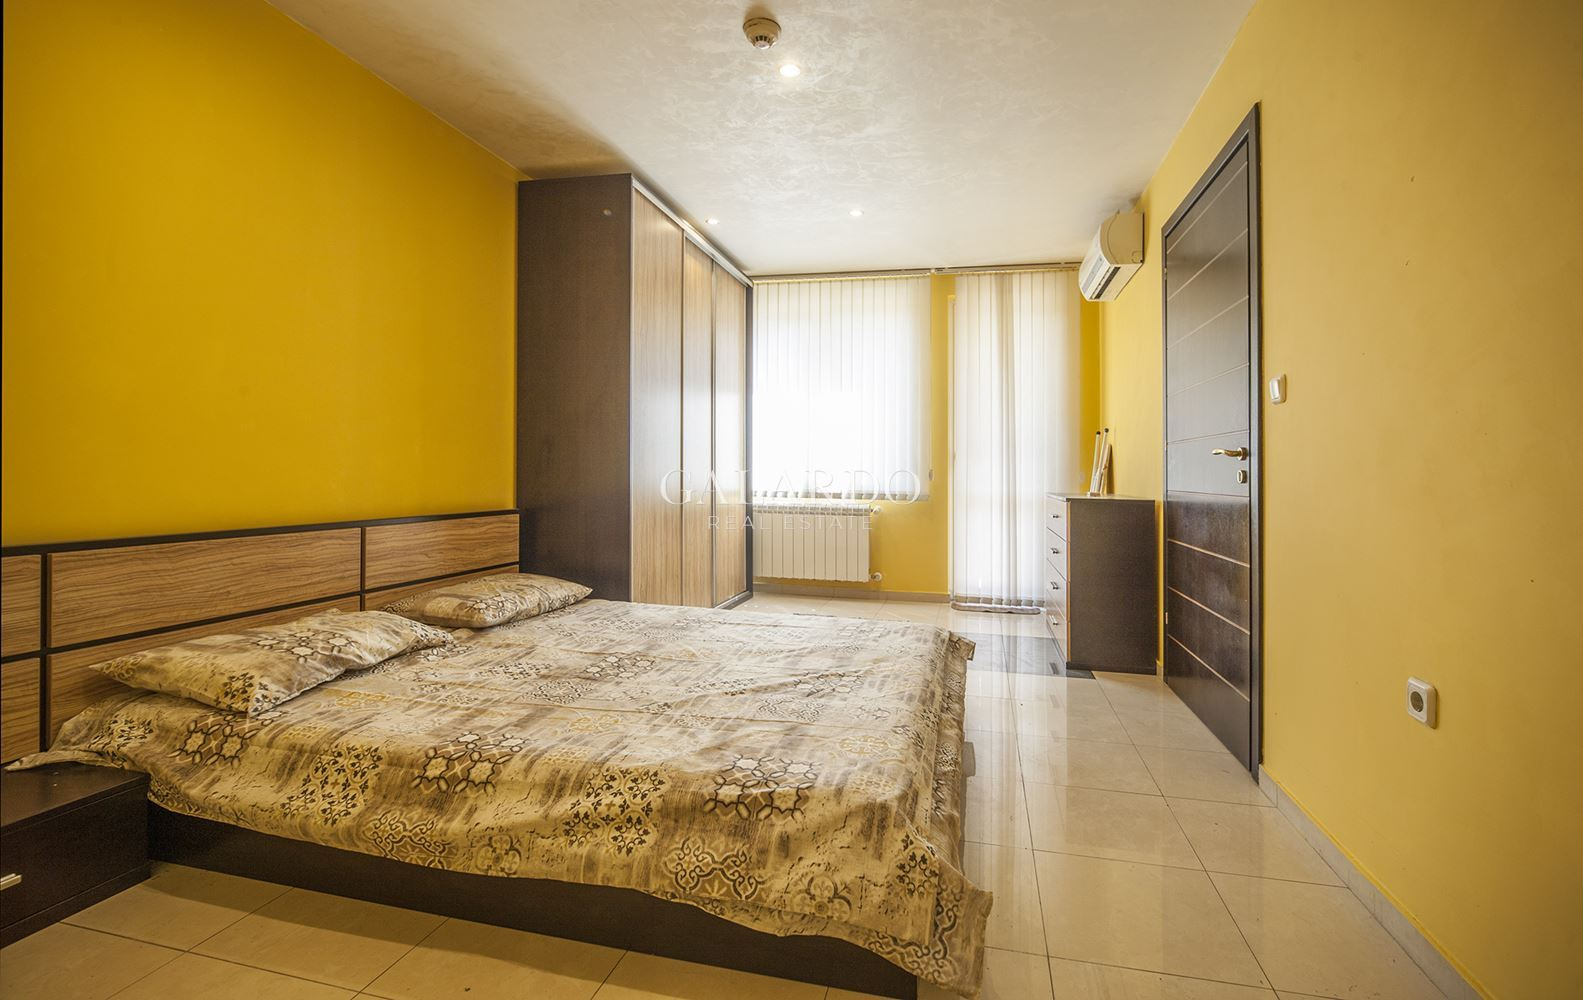 Two-bedroom apartment in